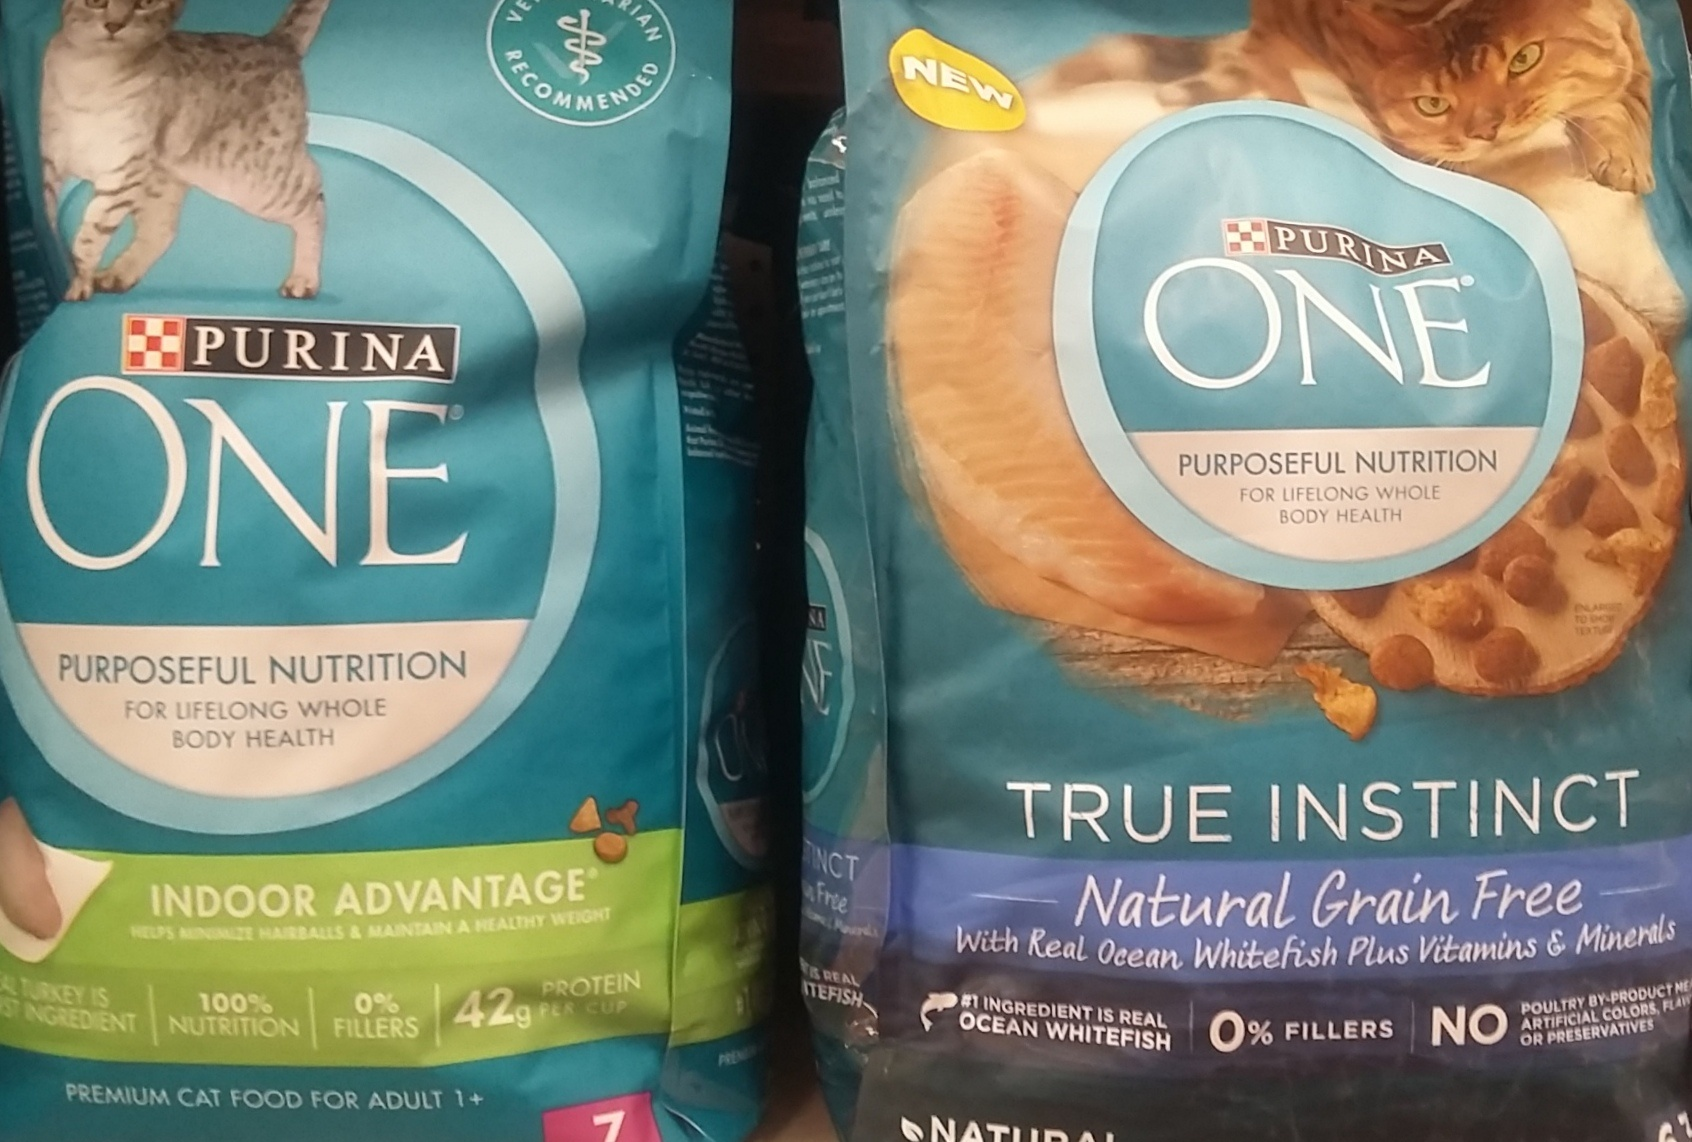 Get a $3 off coupon and a personalized food recommendation for your cats and dogs from Purina ONE® #PurinaONEPets